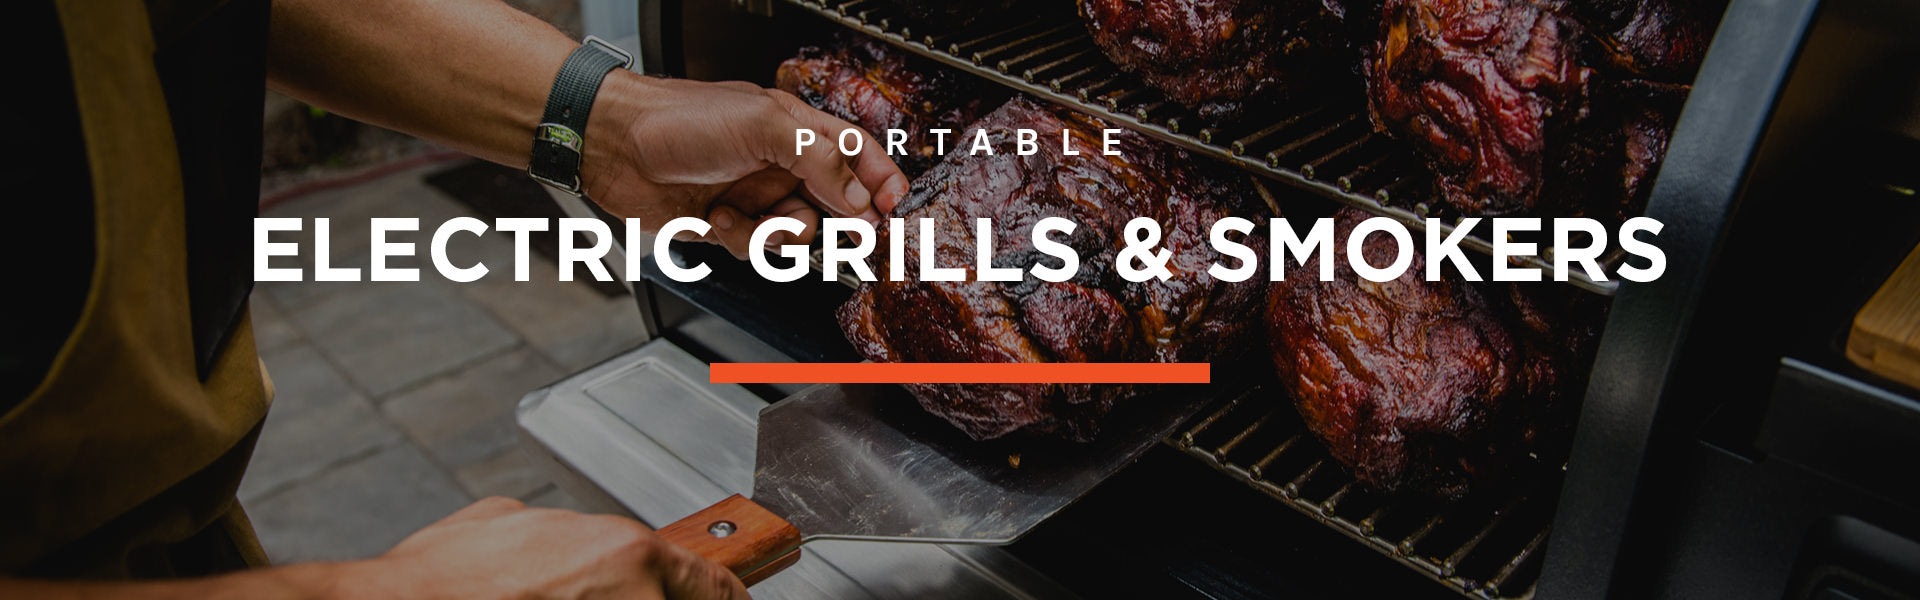 Electric Grills & Smokers Portable